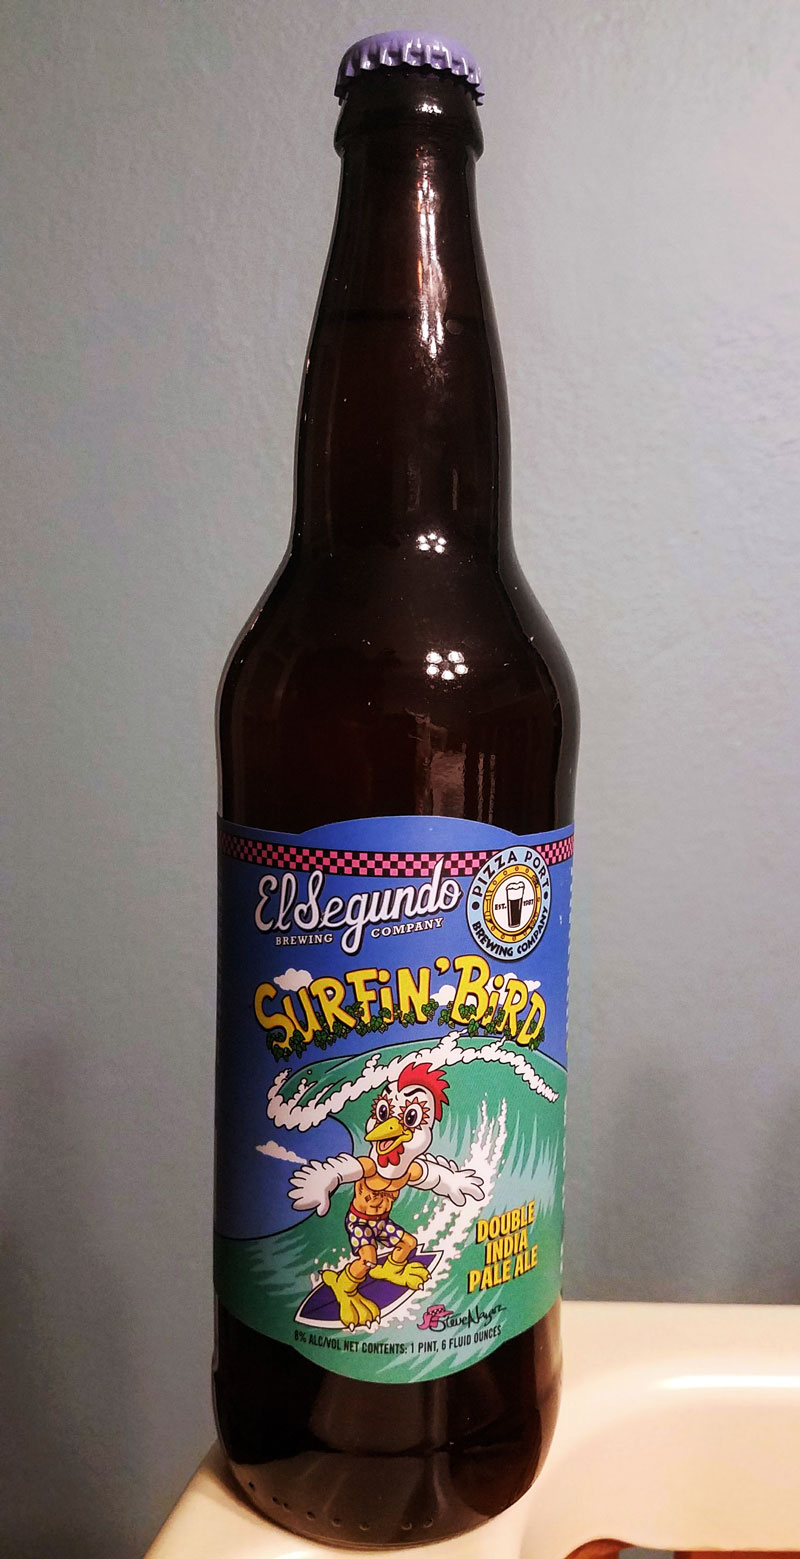 Surfin Bird by El Segundo Brewing has joined the ranks of my Top 5 DIPAs. Incredibly clean and crisp, this can appeal to hop newcomers and hopheads alike. Click through for the full review.